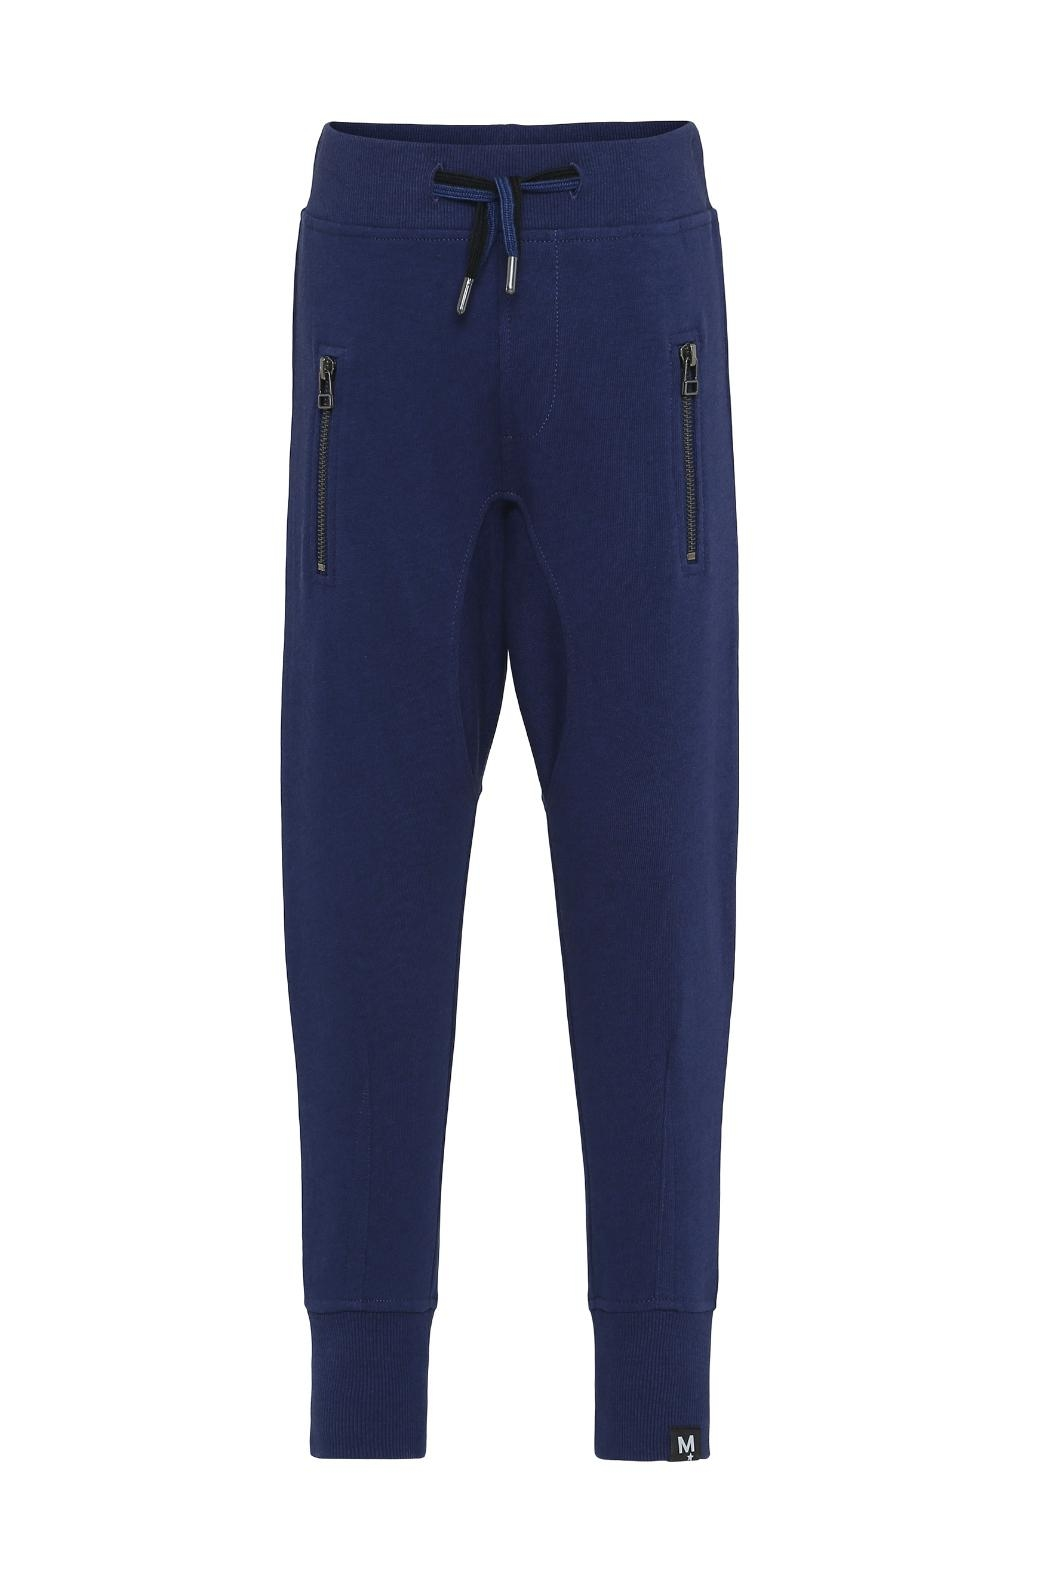 Molo Ashton Trousers/sailor - Main Image